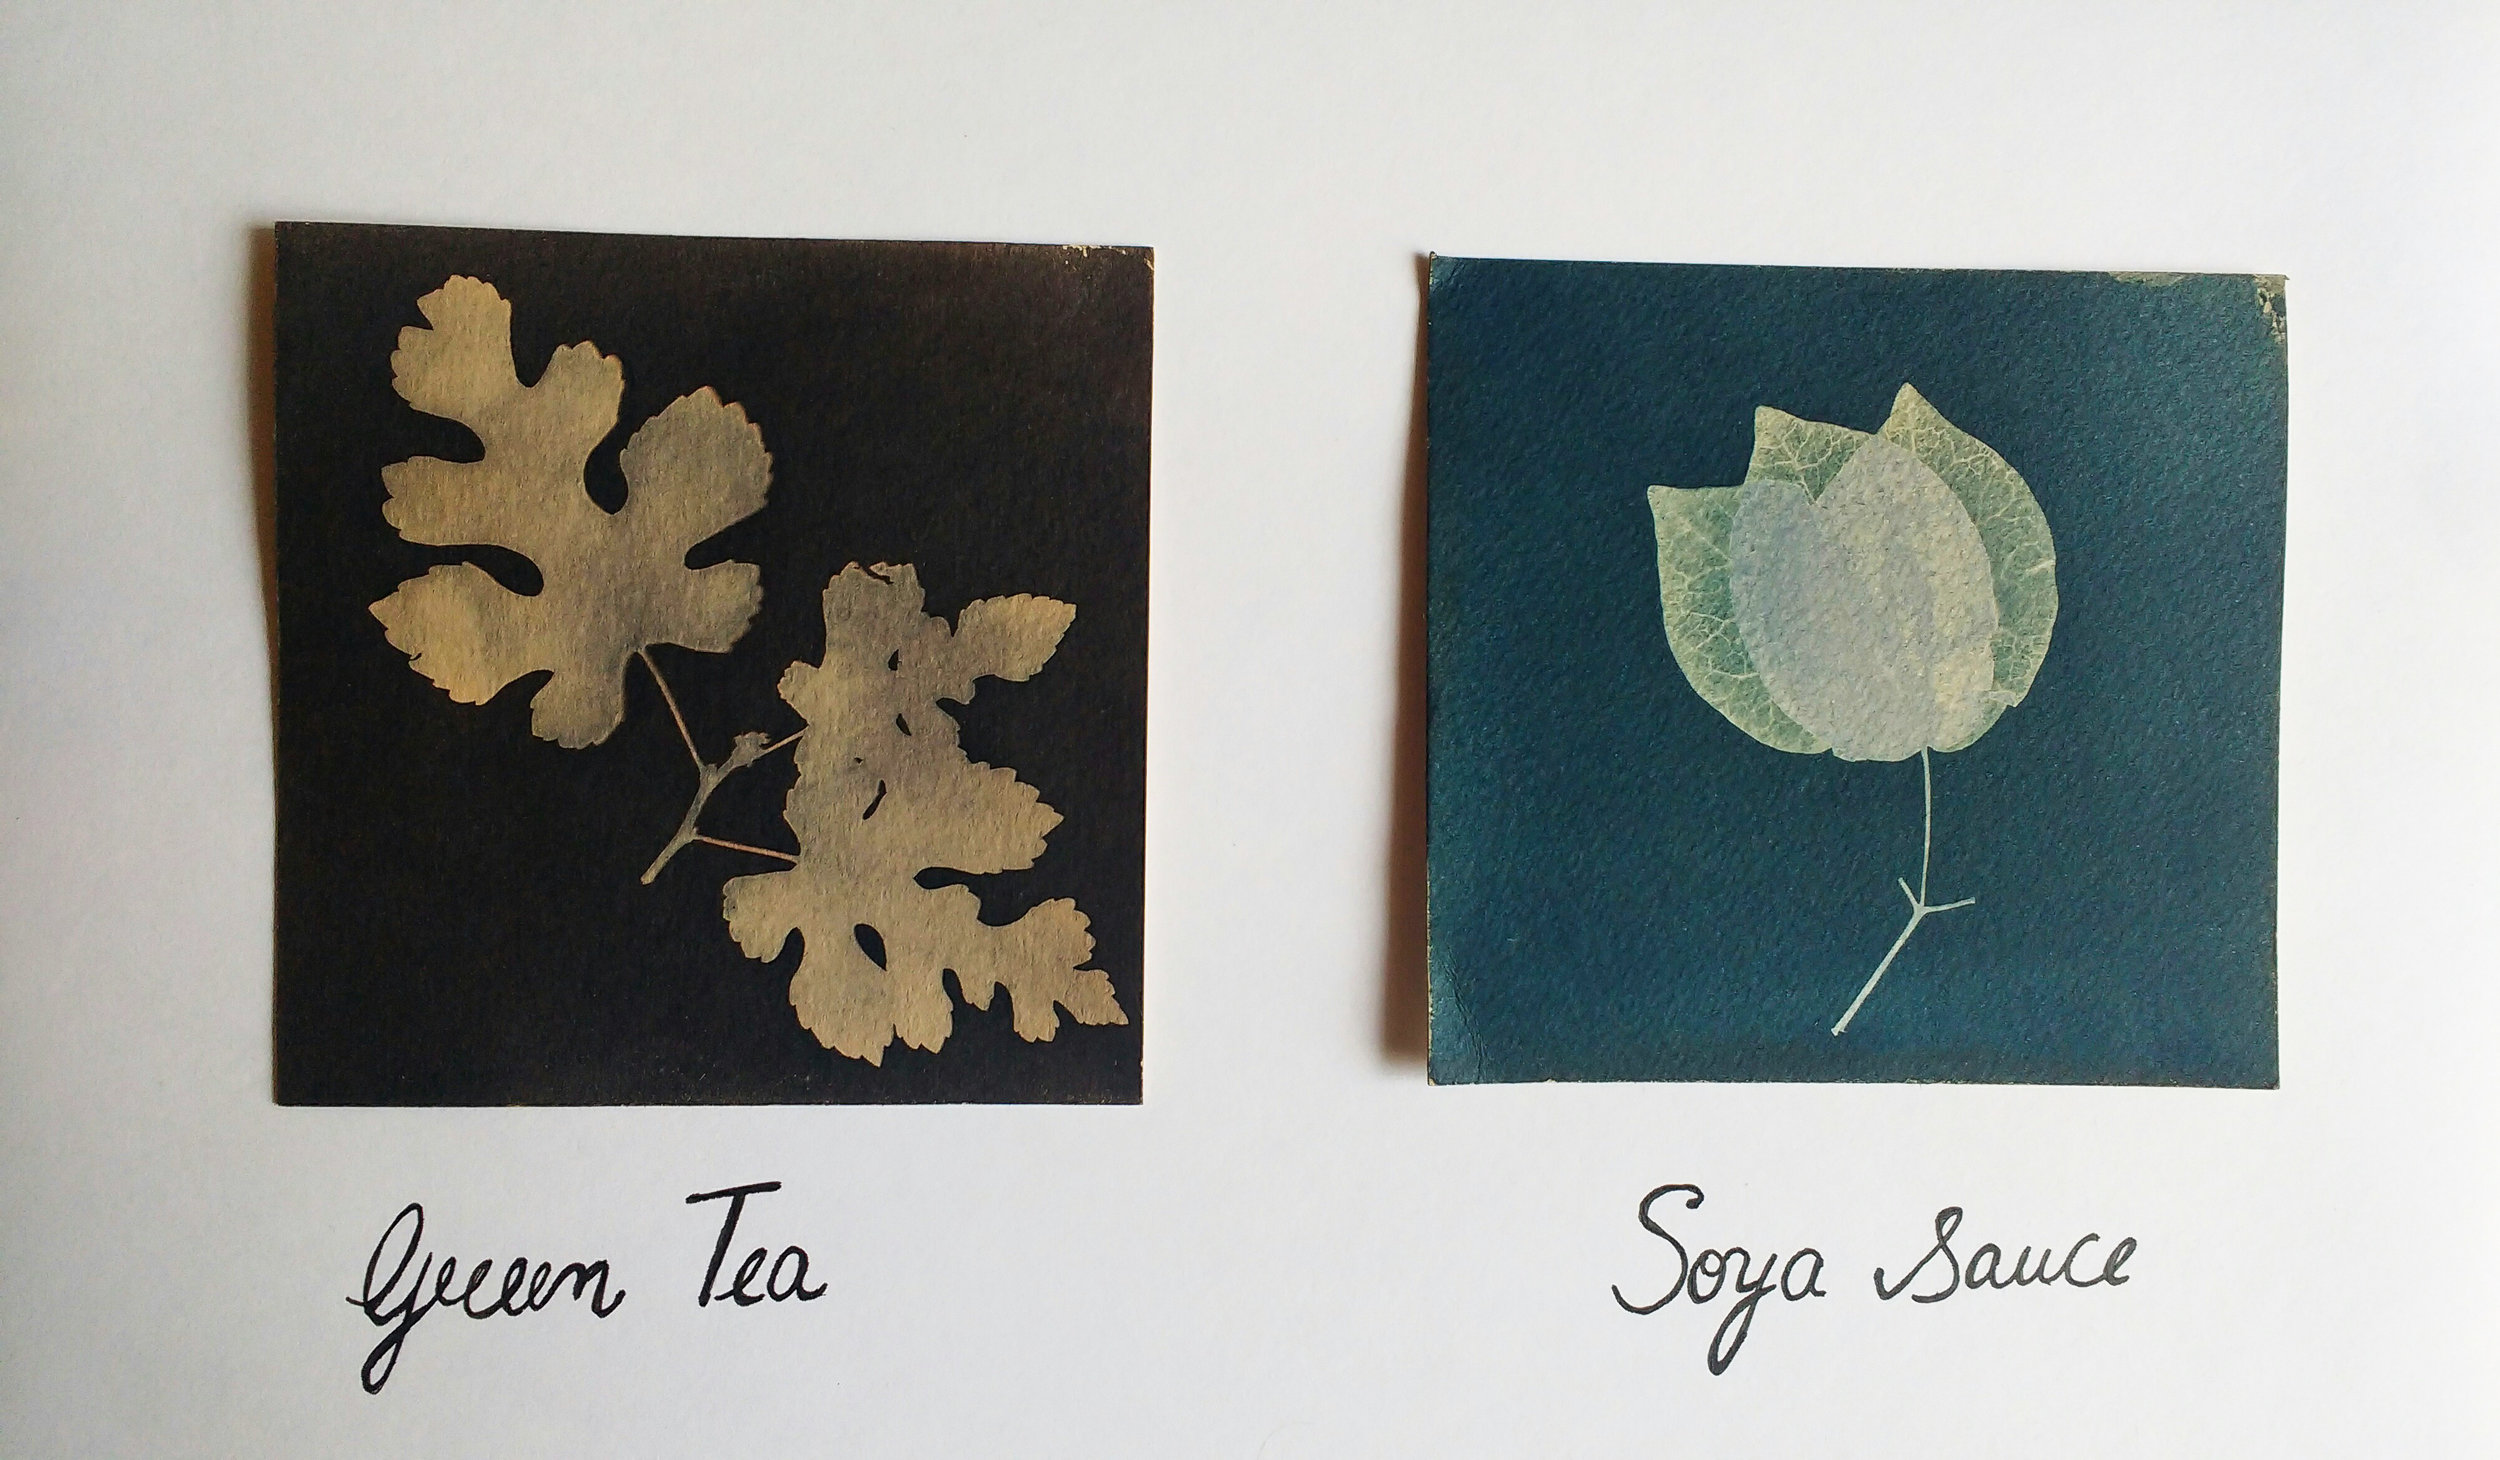 Cyanotype photograms using green tea and soy sauce